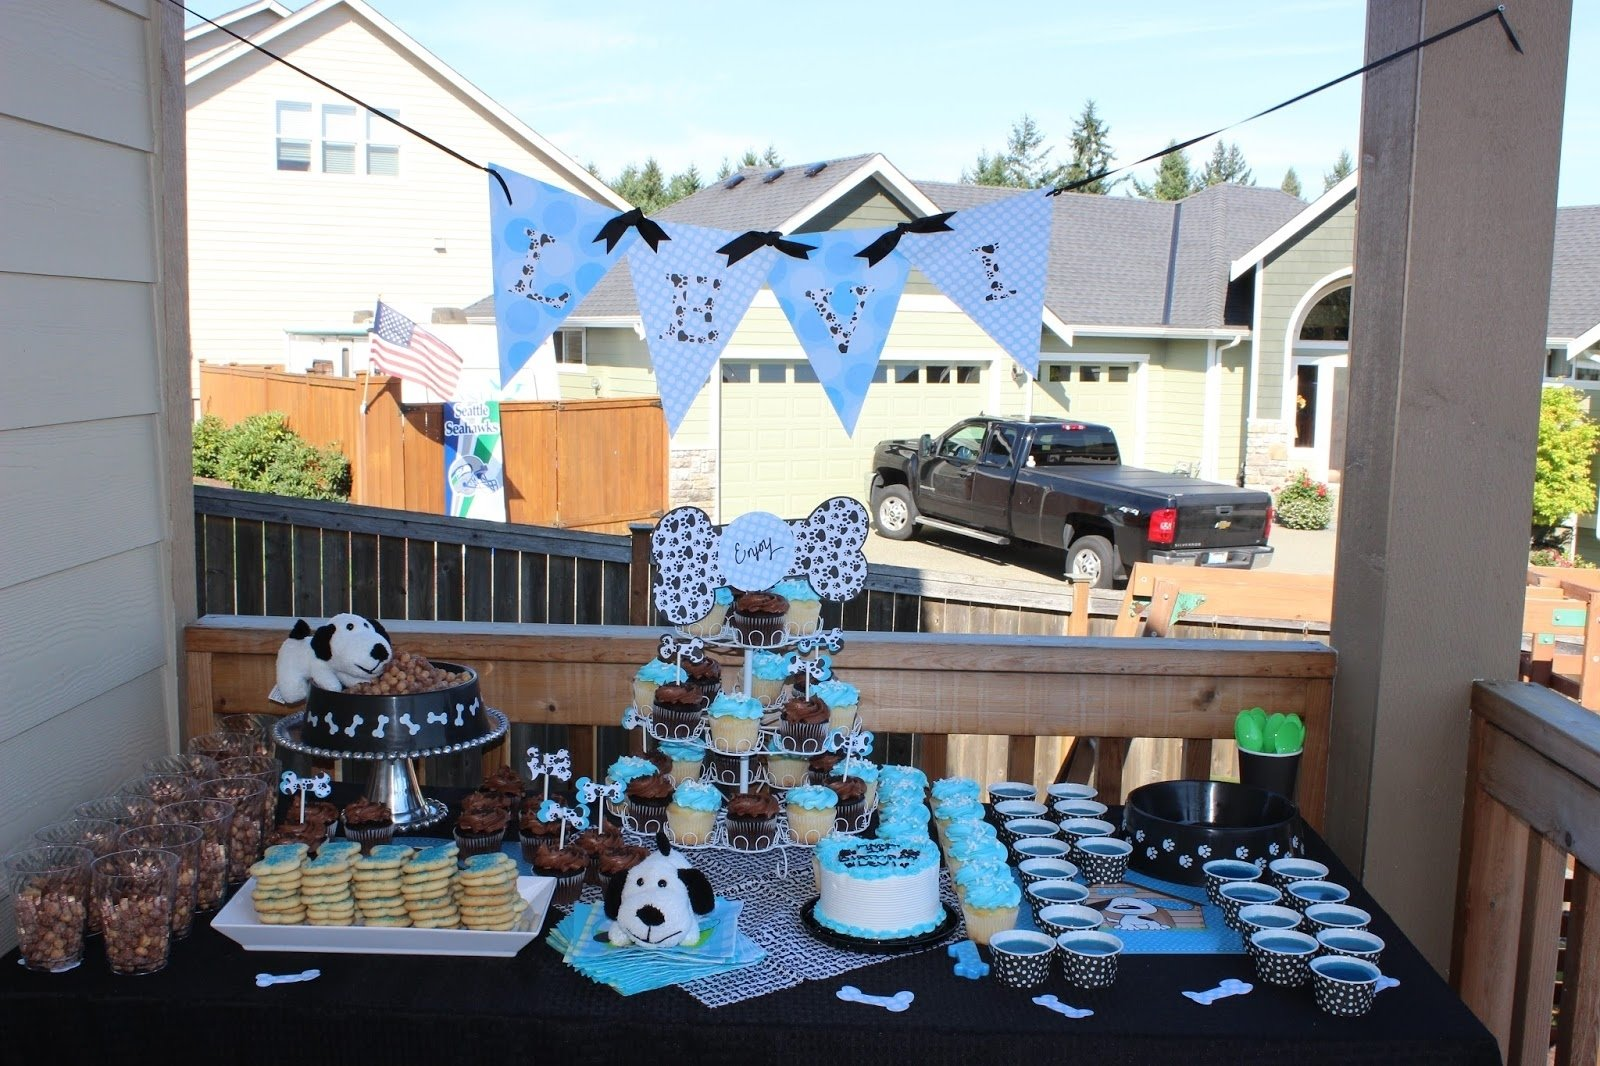 10 Cute Party Ideas For 16 Year Old Boy something creative levis puppy party 1 2020